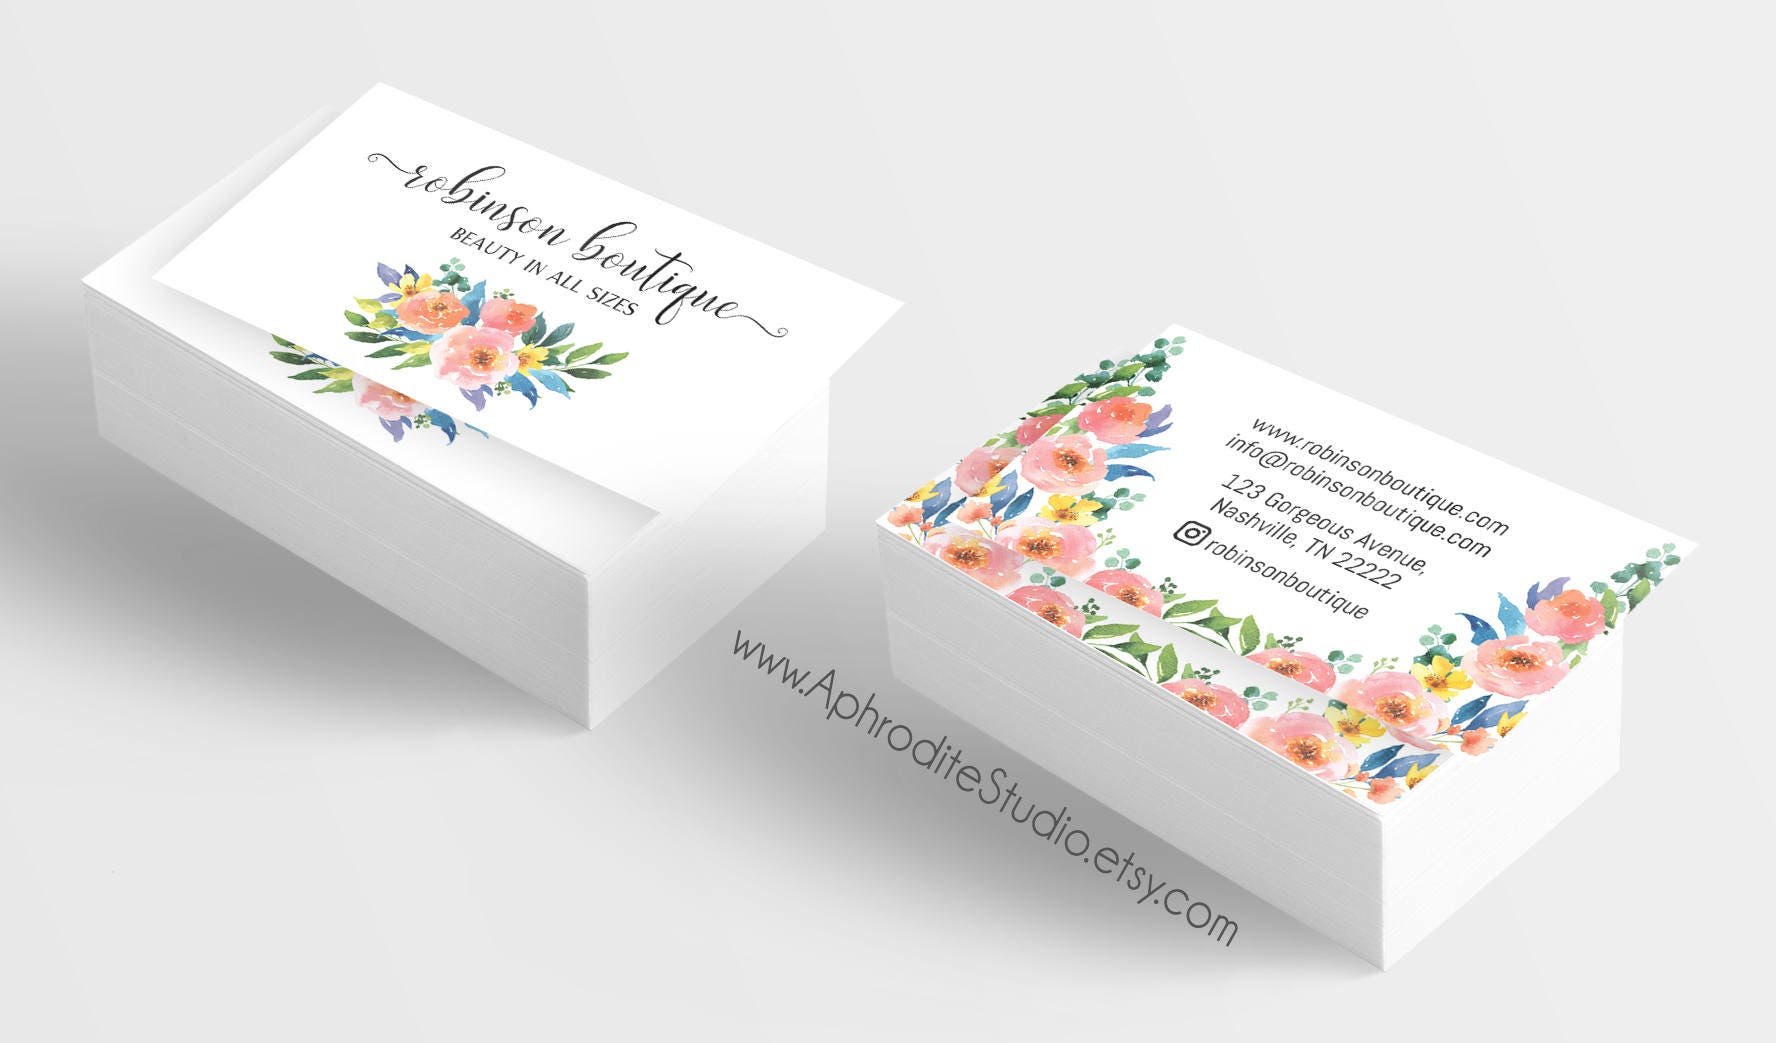 Floral business cards - Flower business cards - Watercolor business ...